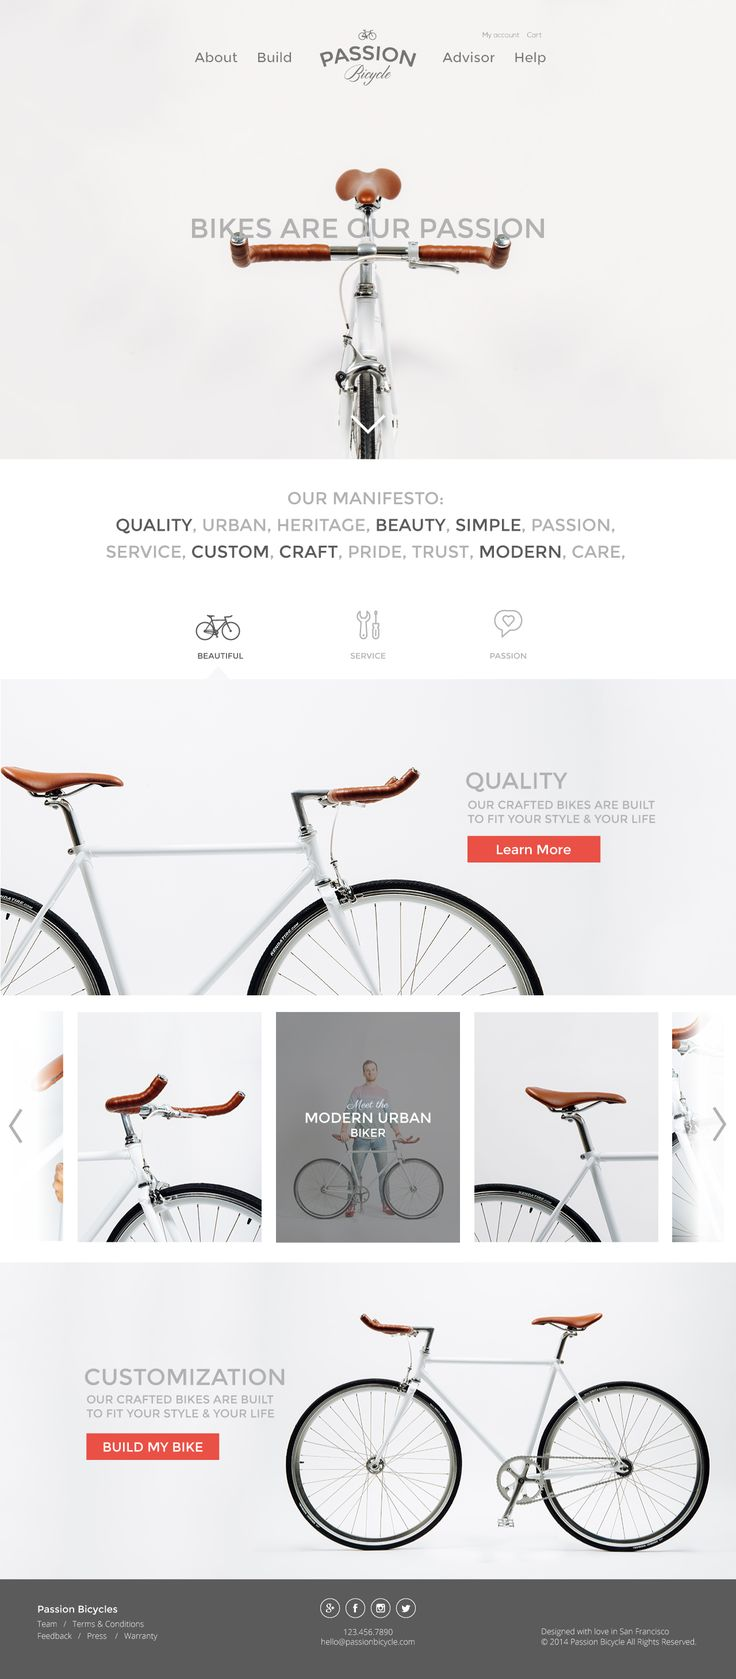 Passion Bicycle by JJ Lee.